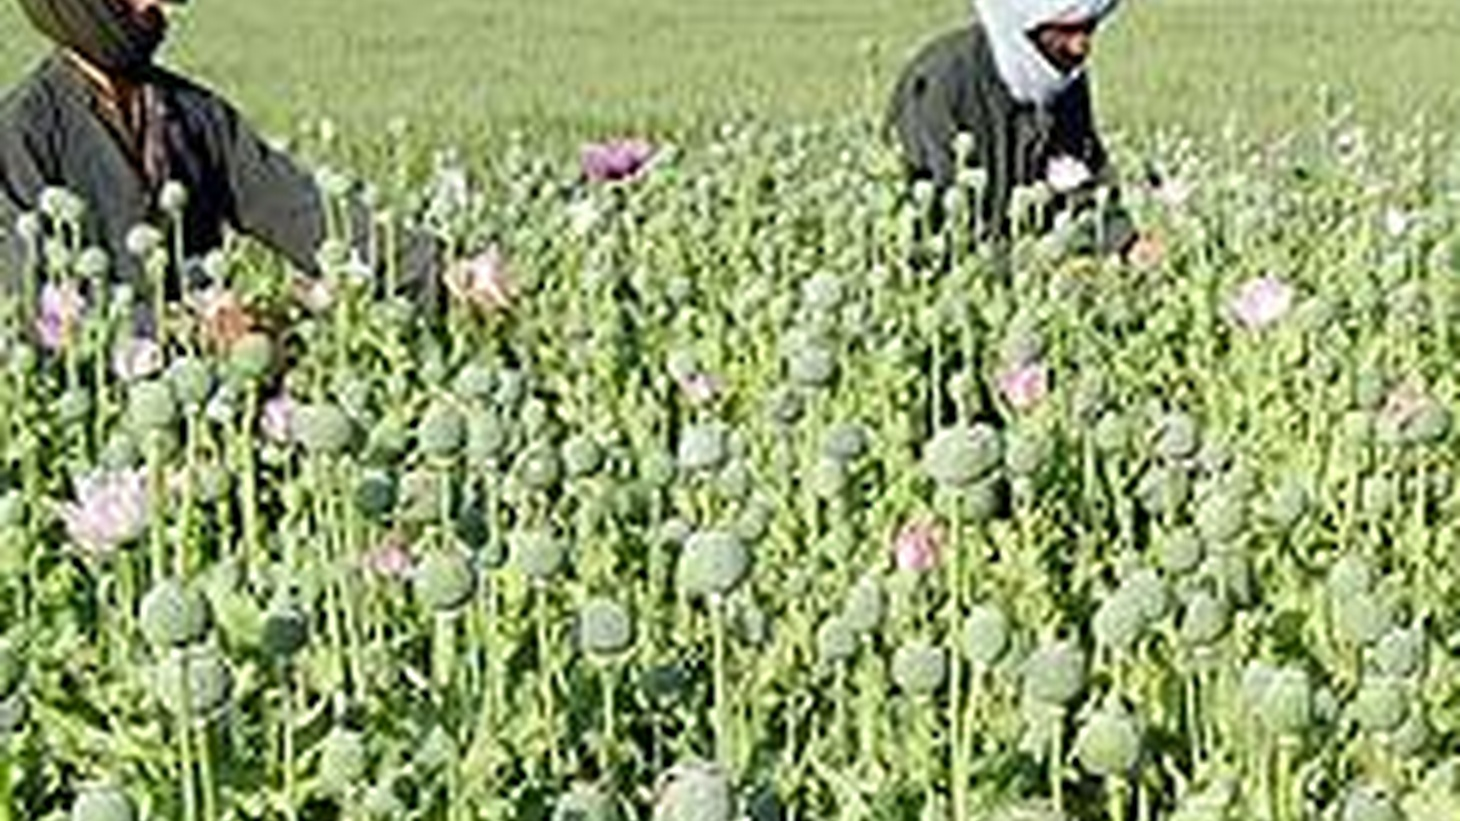 The opium poppy is financing the return of the Taliban in Afghanistan, but President Hamid Karzai is protecting opium traffic in order to stay in office.  We hear dramatic claims by a high-level US official who can tell his story now that's resigned. Also, Alaska Senator Ted Stevens indicted, and gas means gold in rural Louisiana.